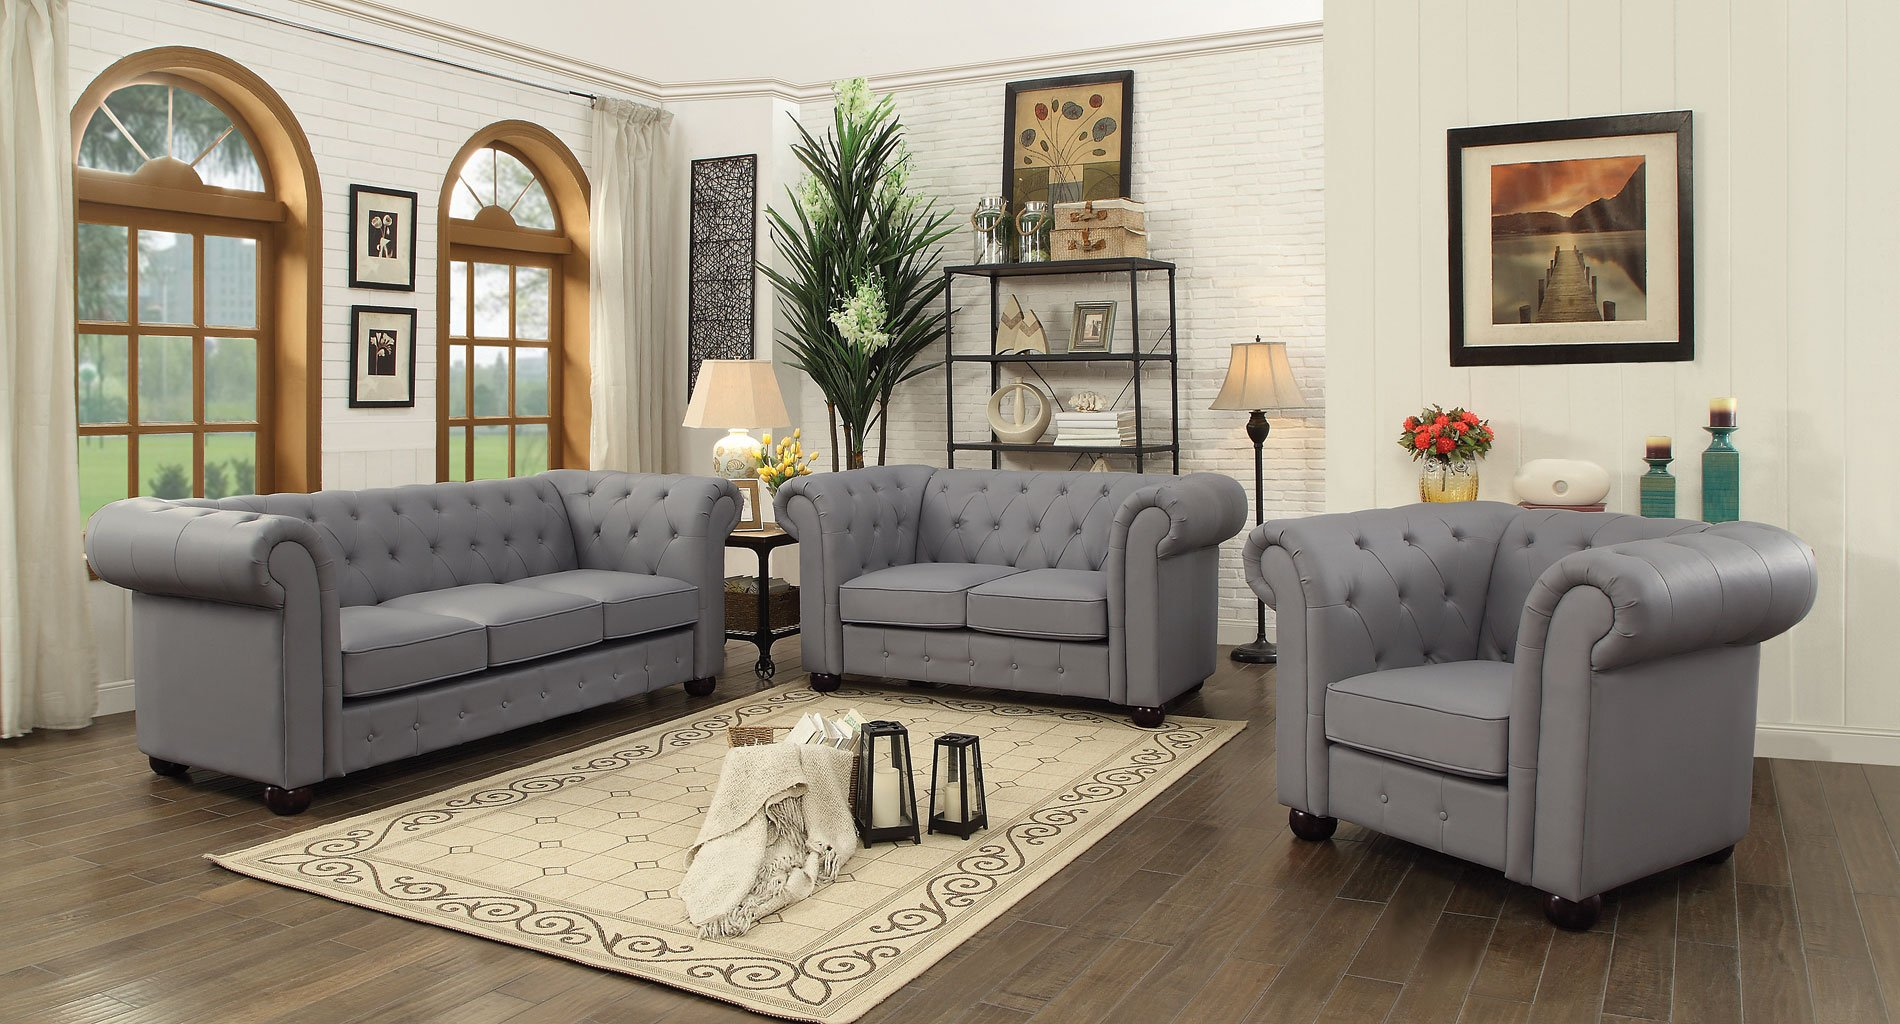 G491 Tufted Living Room Set Gray by Glory Furniture